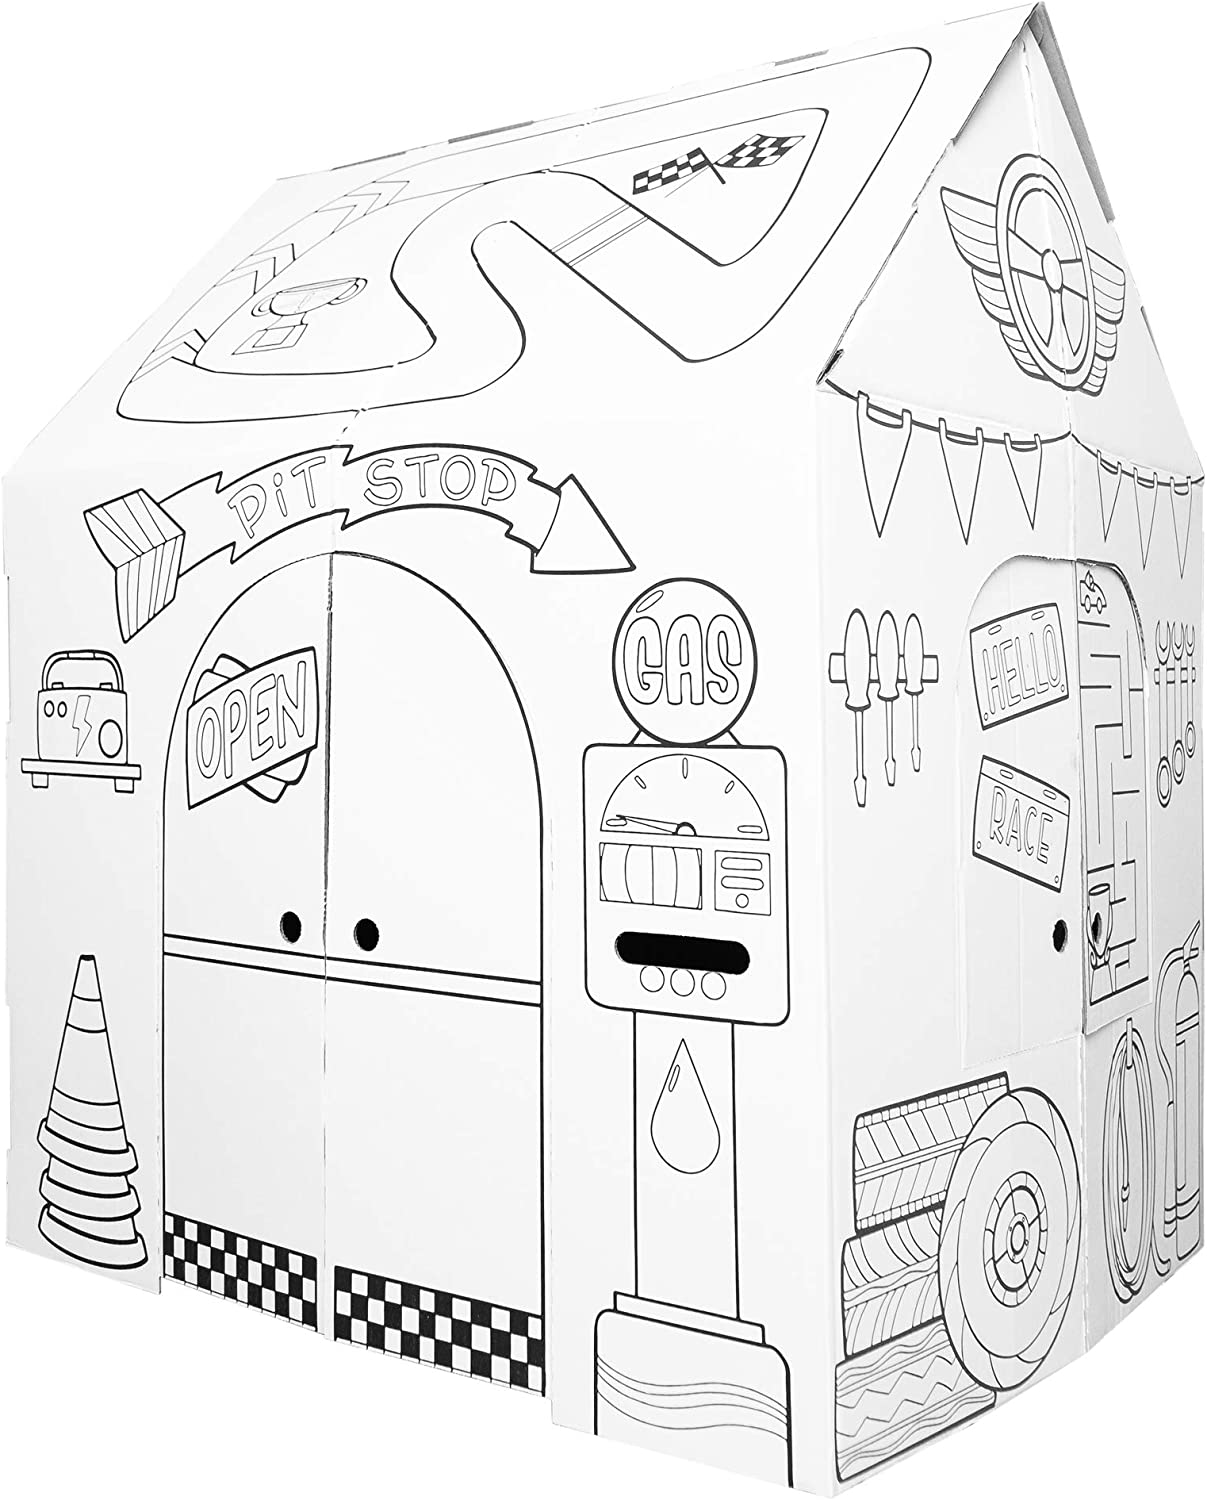 Amazon Com Easy Playhouse Garage Kids Art Craft For Indoor Outdoor Fun Color Favorite Garage Items Decorate Personalize A Cardboard Fort 32 X 26 5 X 40 5